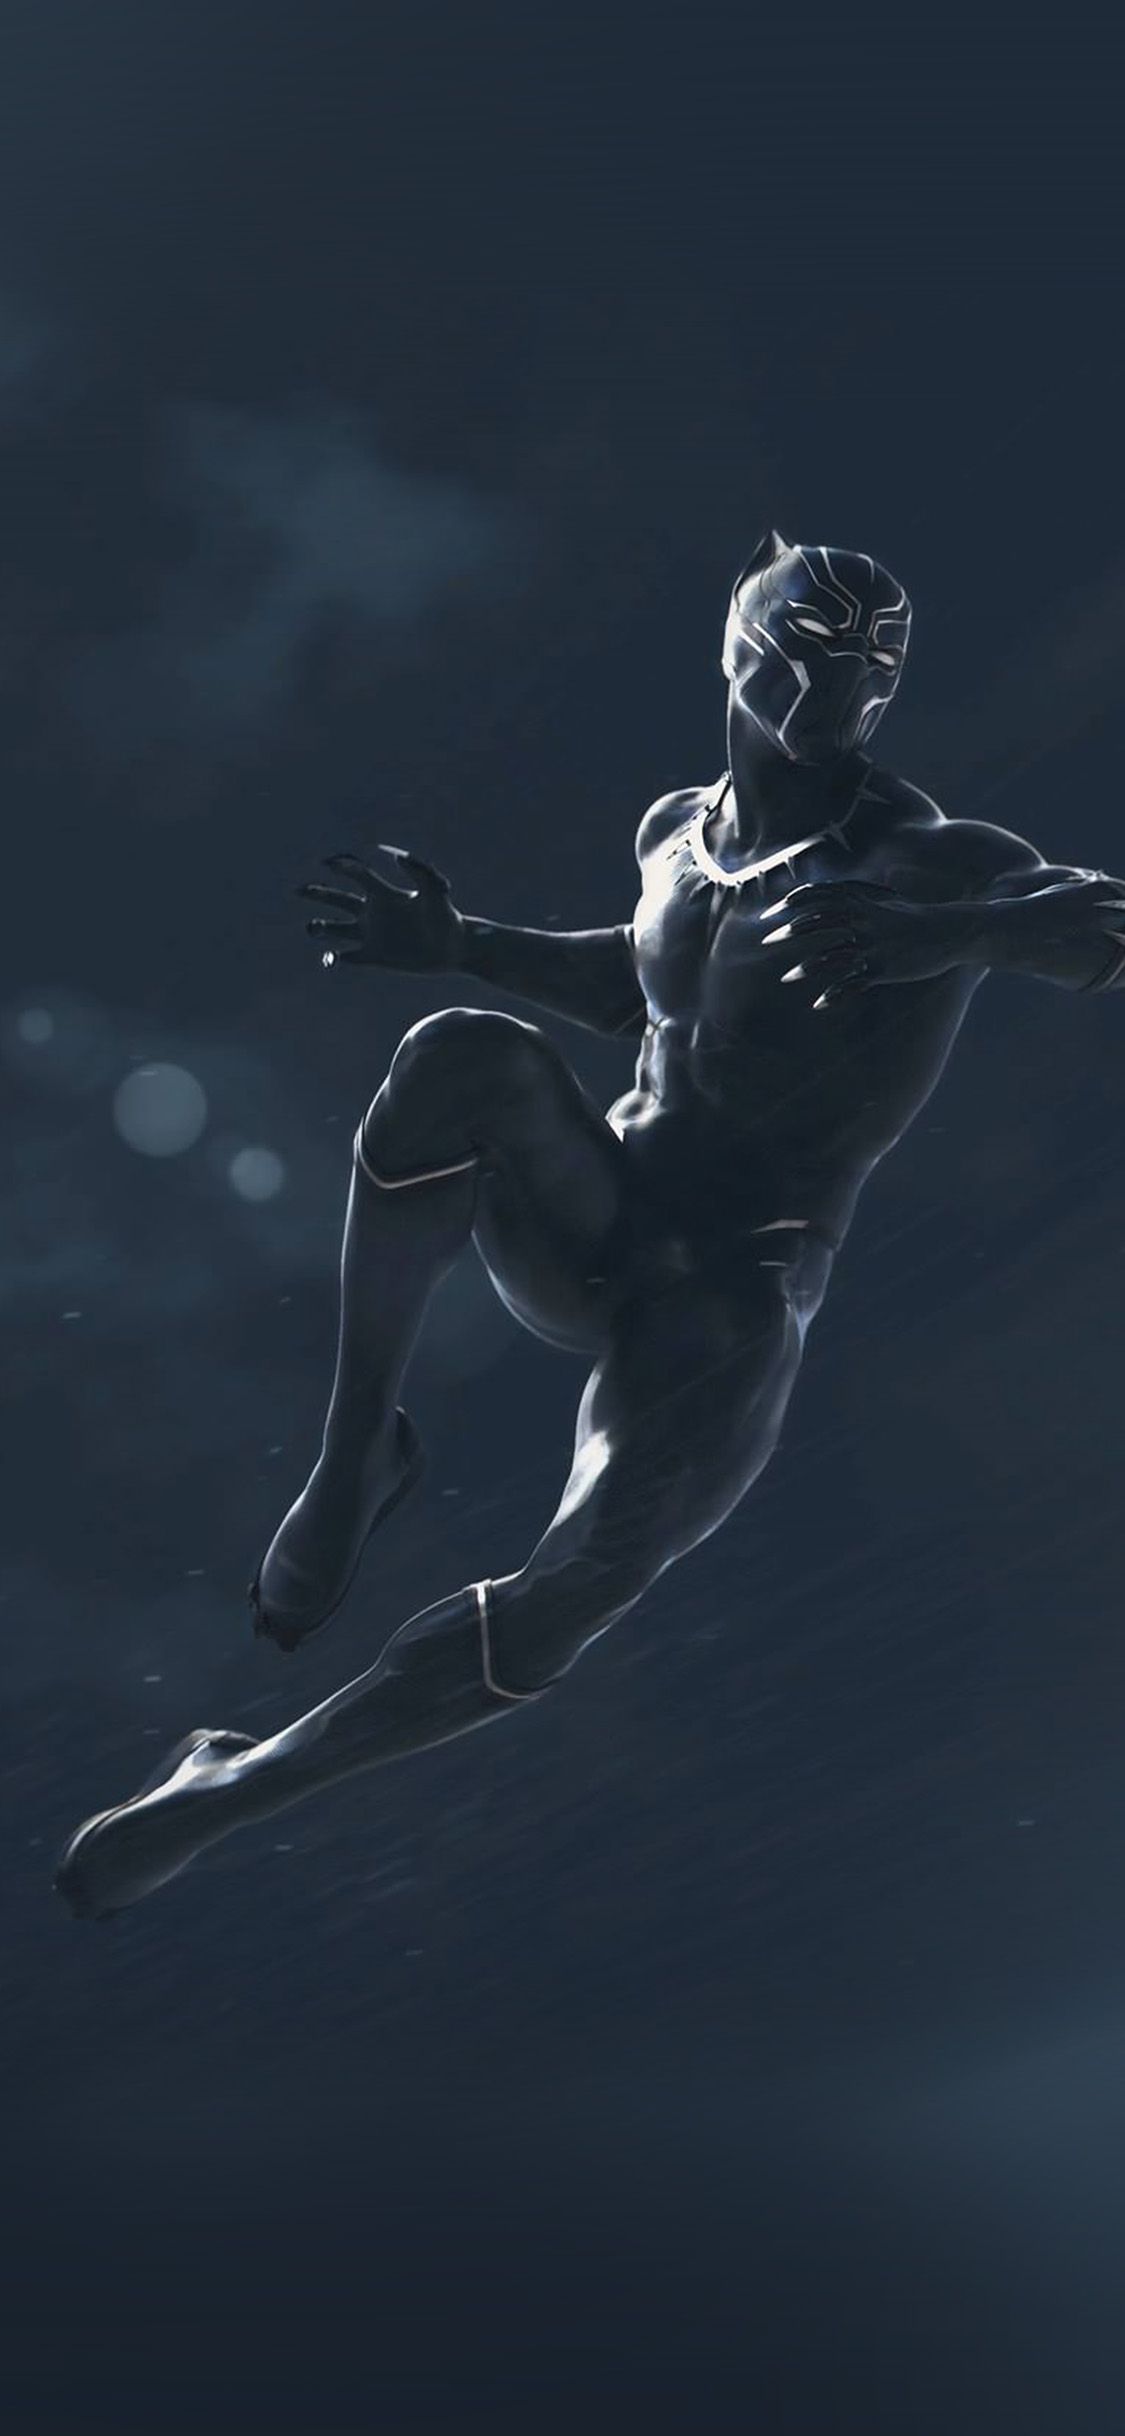 iPhonexpapers.com-Apple-iPhone-wallpaper-bd98-marvel-blackpanther-dark-art-illustration